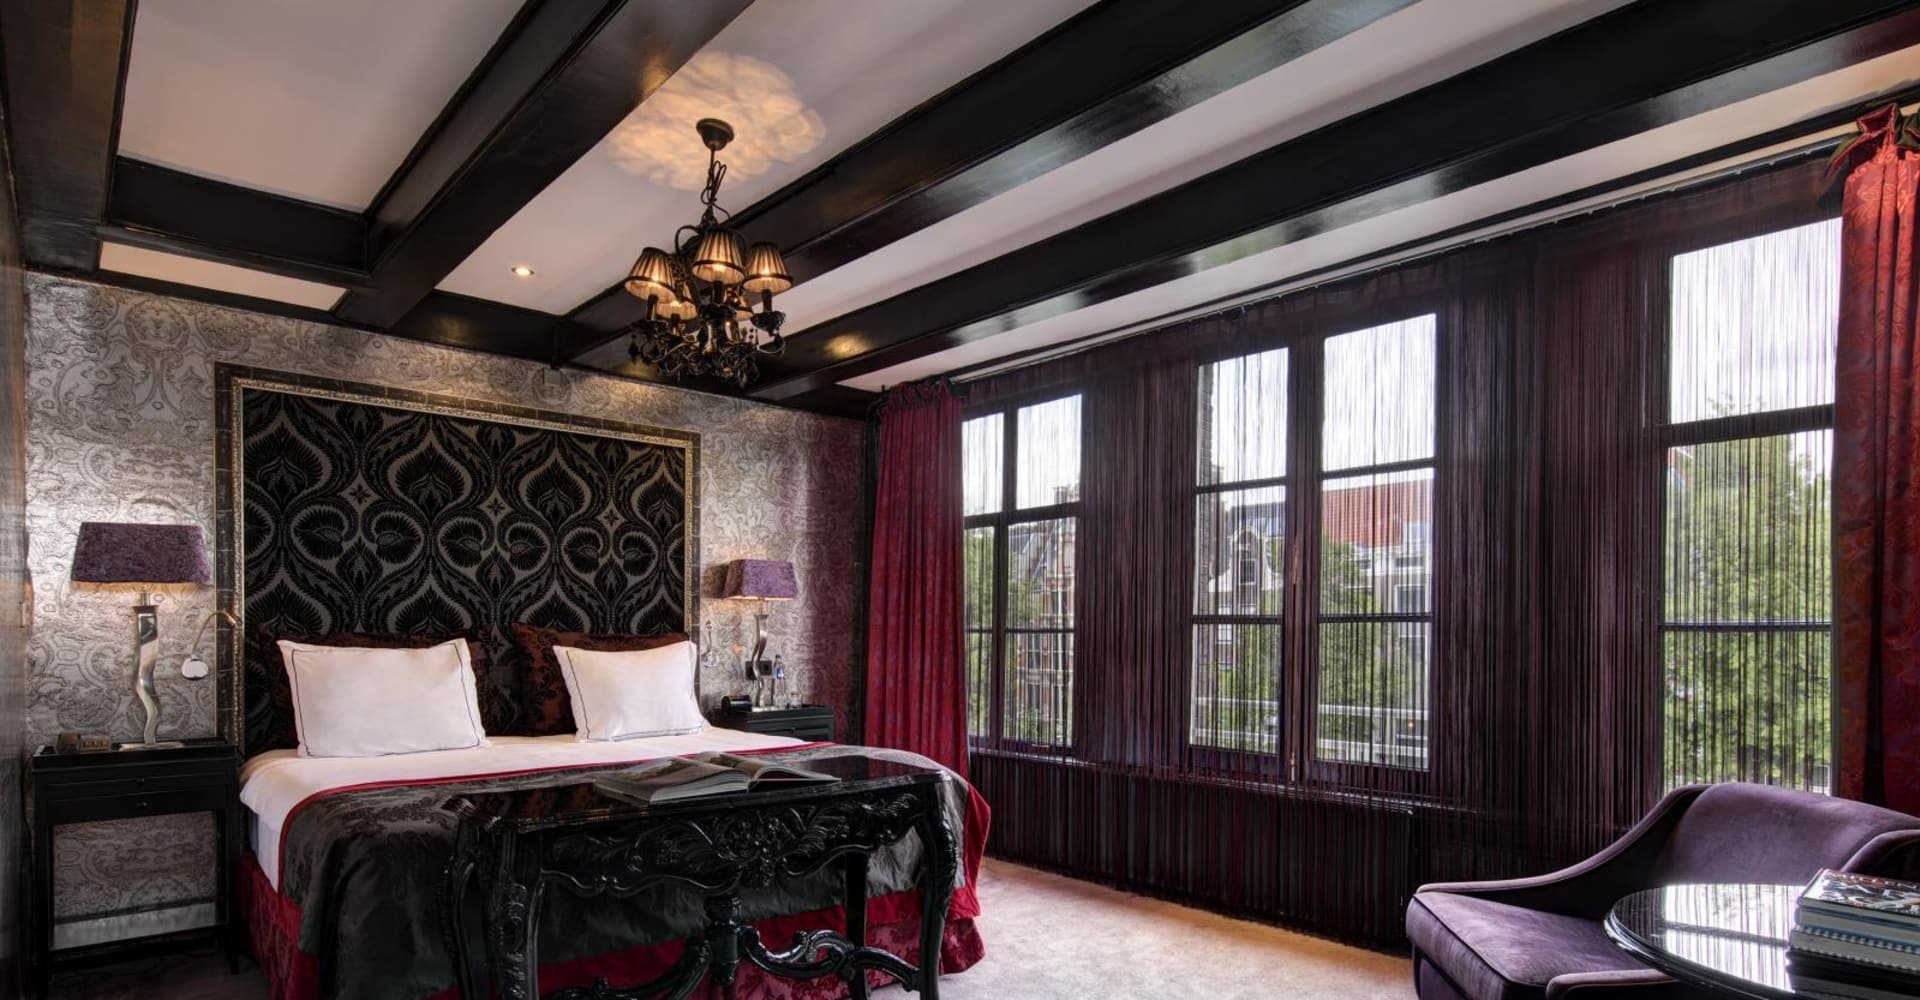 Deluxe kamers - The Toren Amsterdam - By the Pavilions